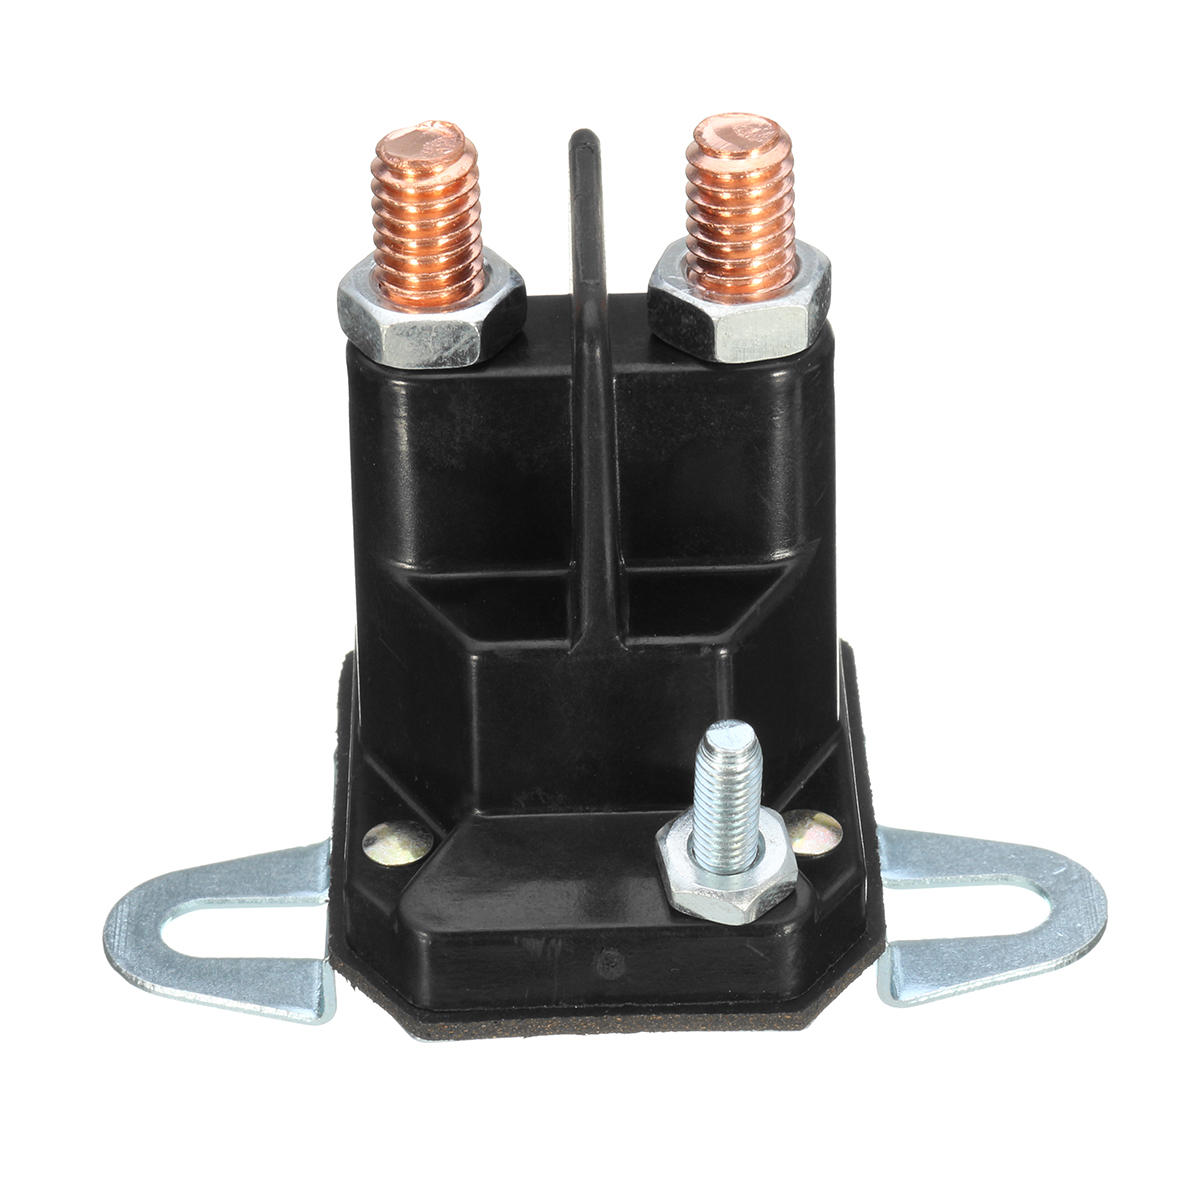 3 pole starter solenoid relay switch universal stens for mtd lawnmower  replacement mtd lowes solenoid 925 1426